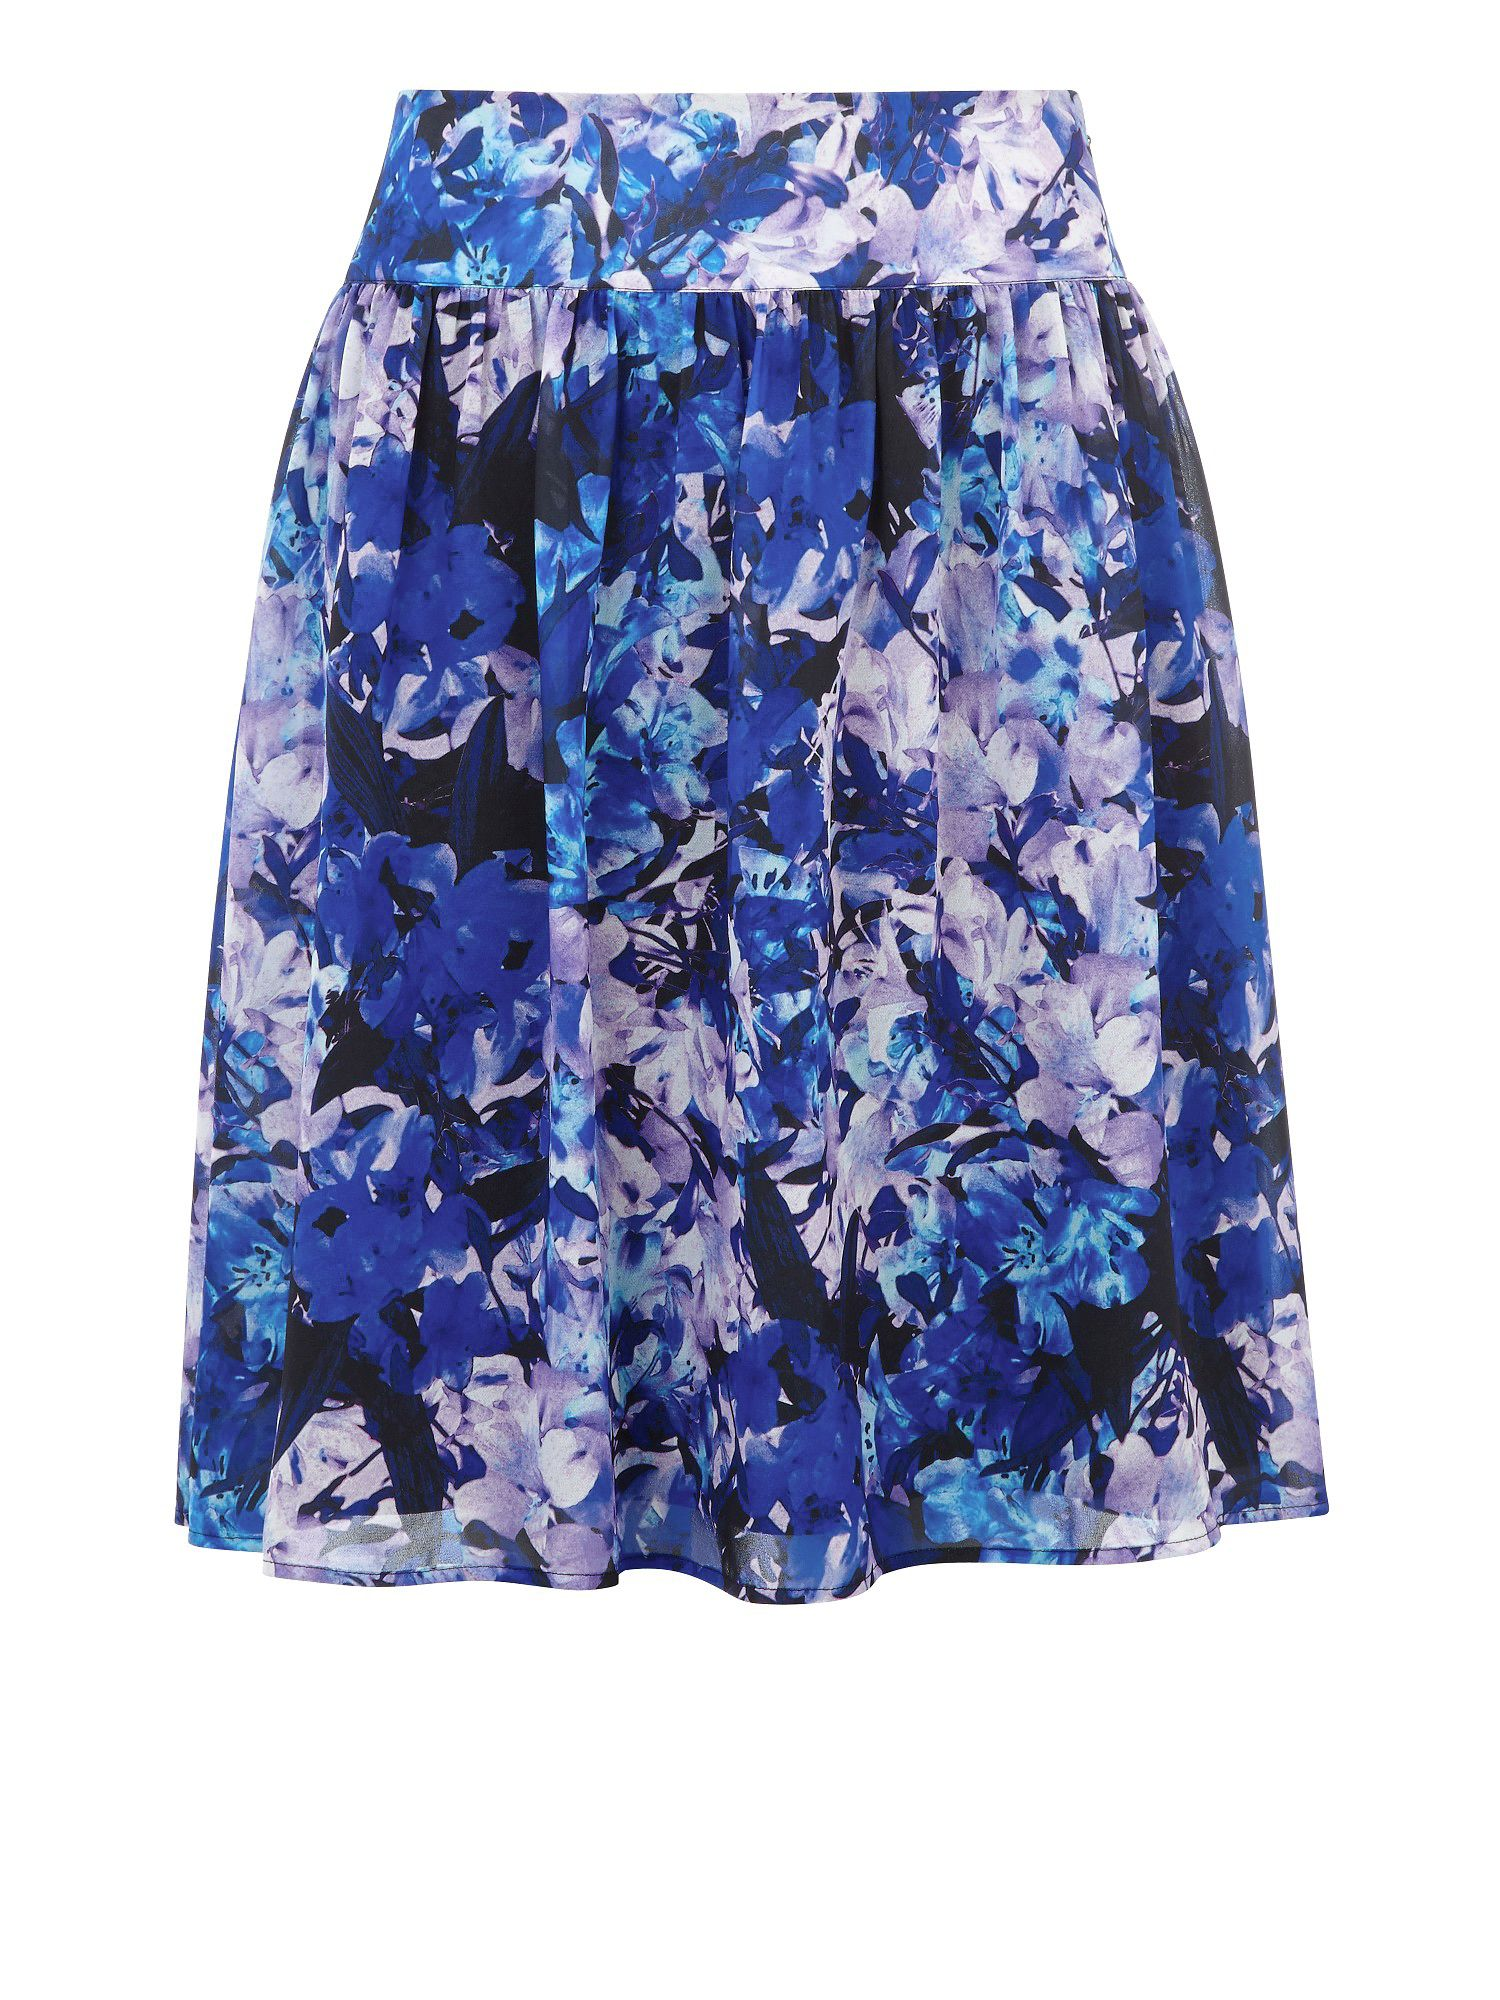 Honour print full skirt